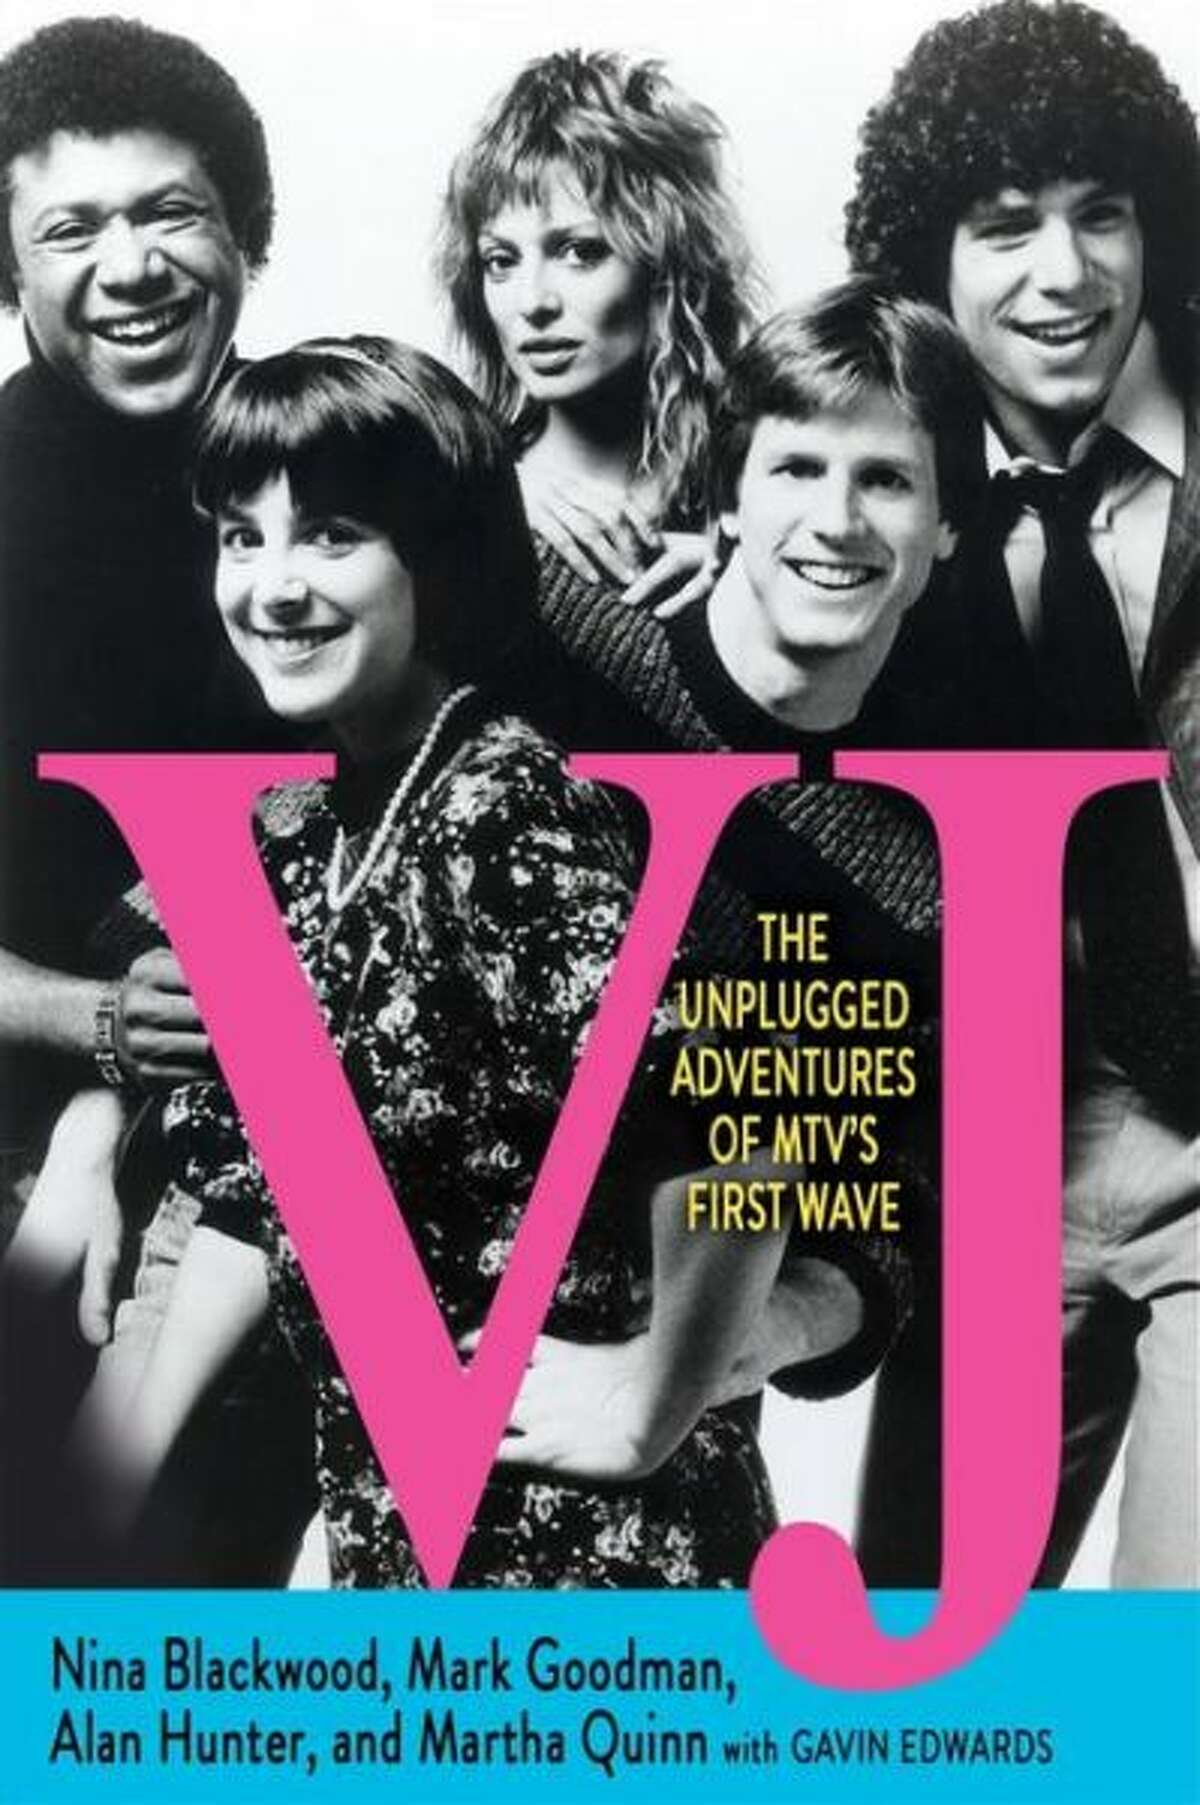 VJ: The Unplugged Adventures of MTV s First Wave